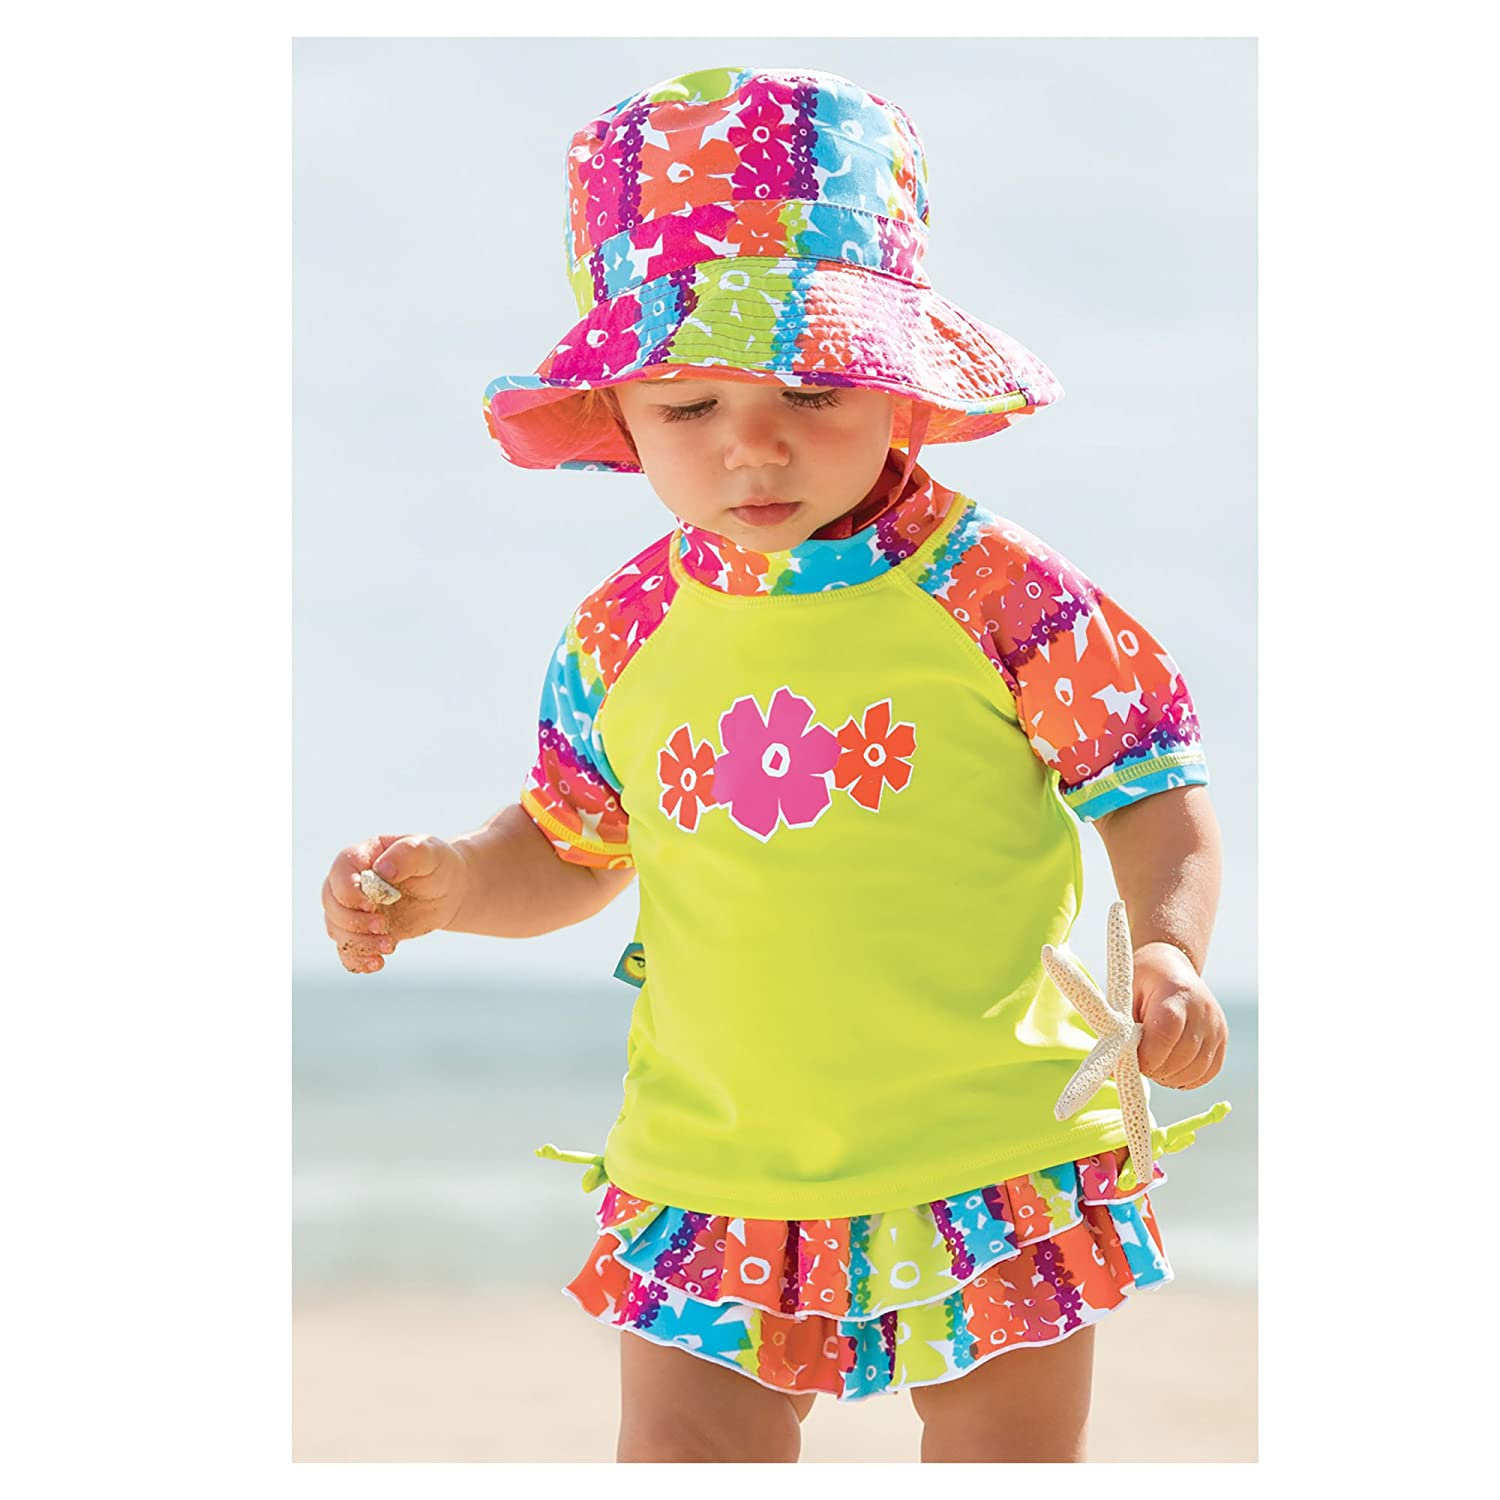 Sun Smarties Babies Toddler Kids UPF 50 Short Sleeve Rash Guard Sun Swim Shirts